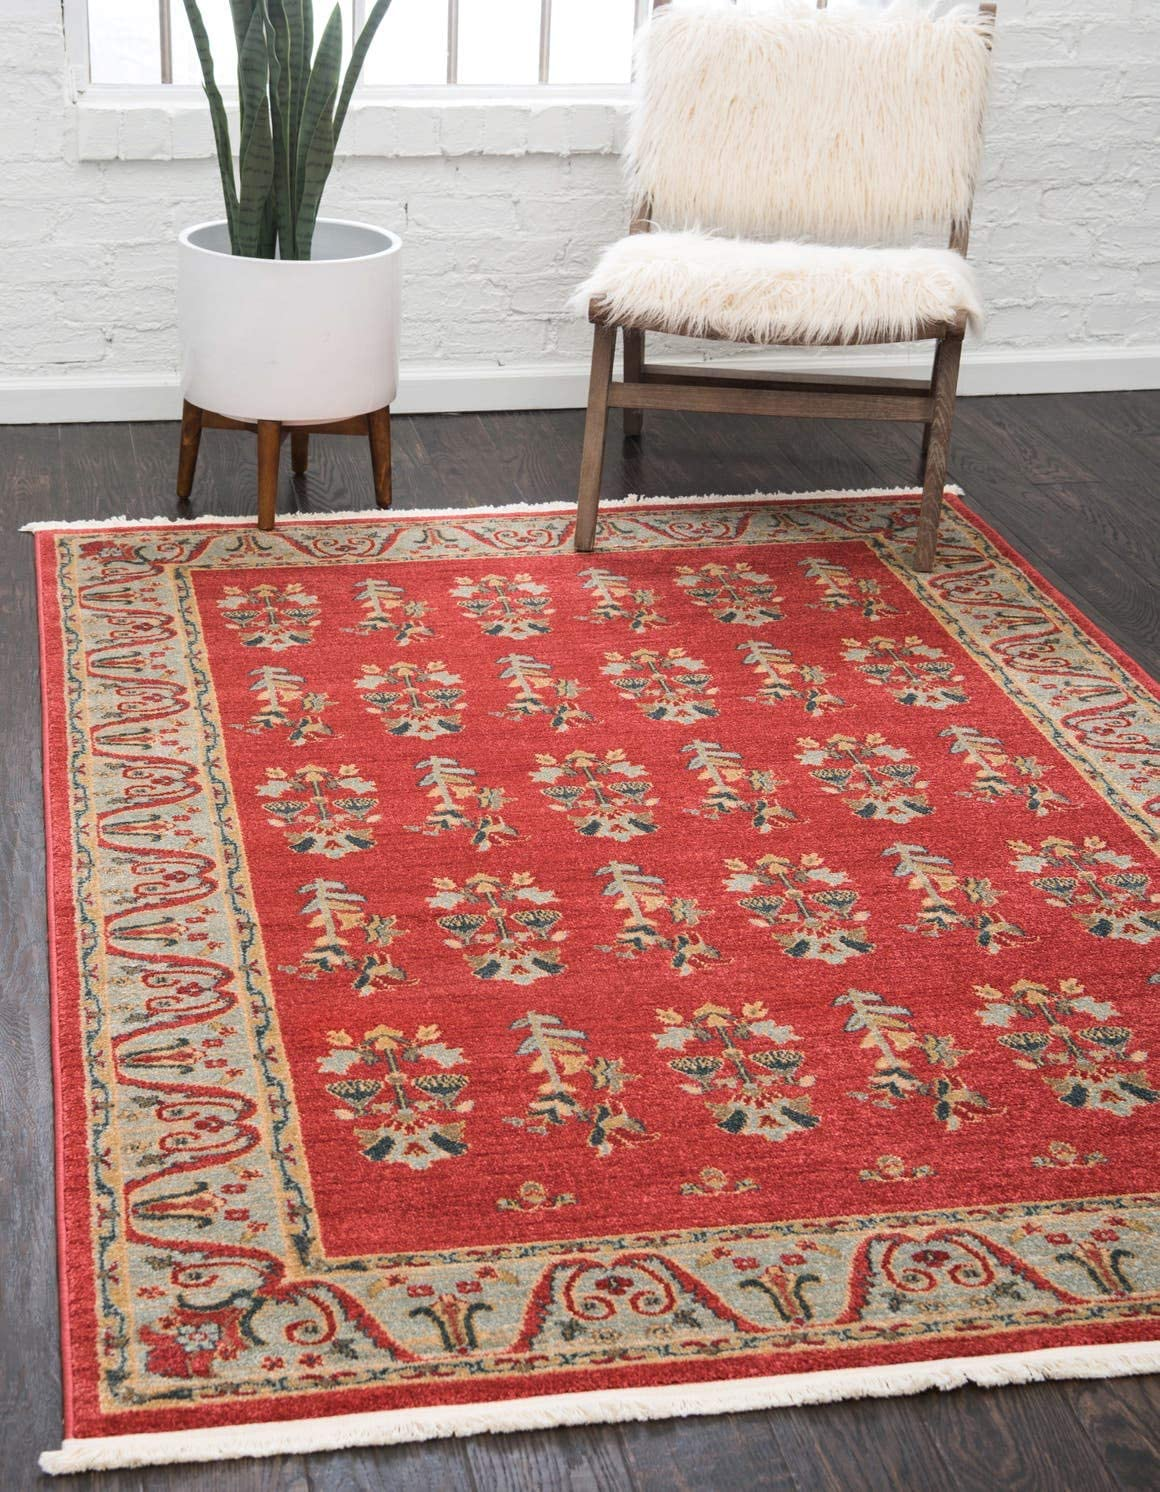 Unique Loom Fars Collection Tribal Modern Casual Red Area Rug 9 0 x 12 0